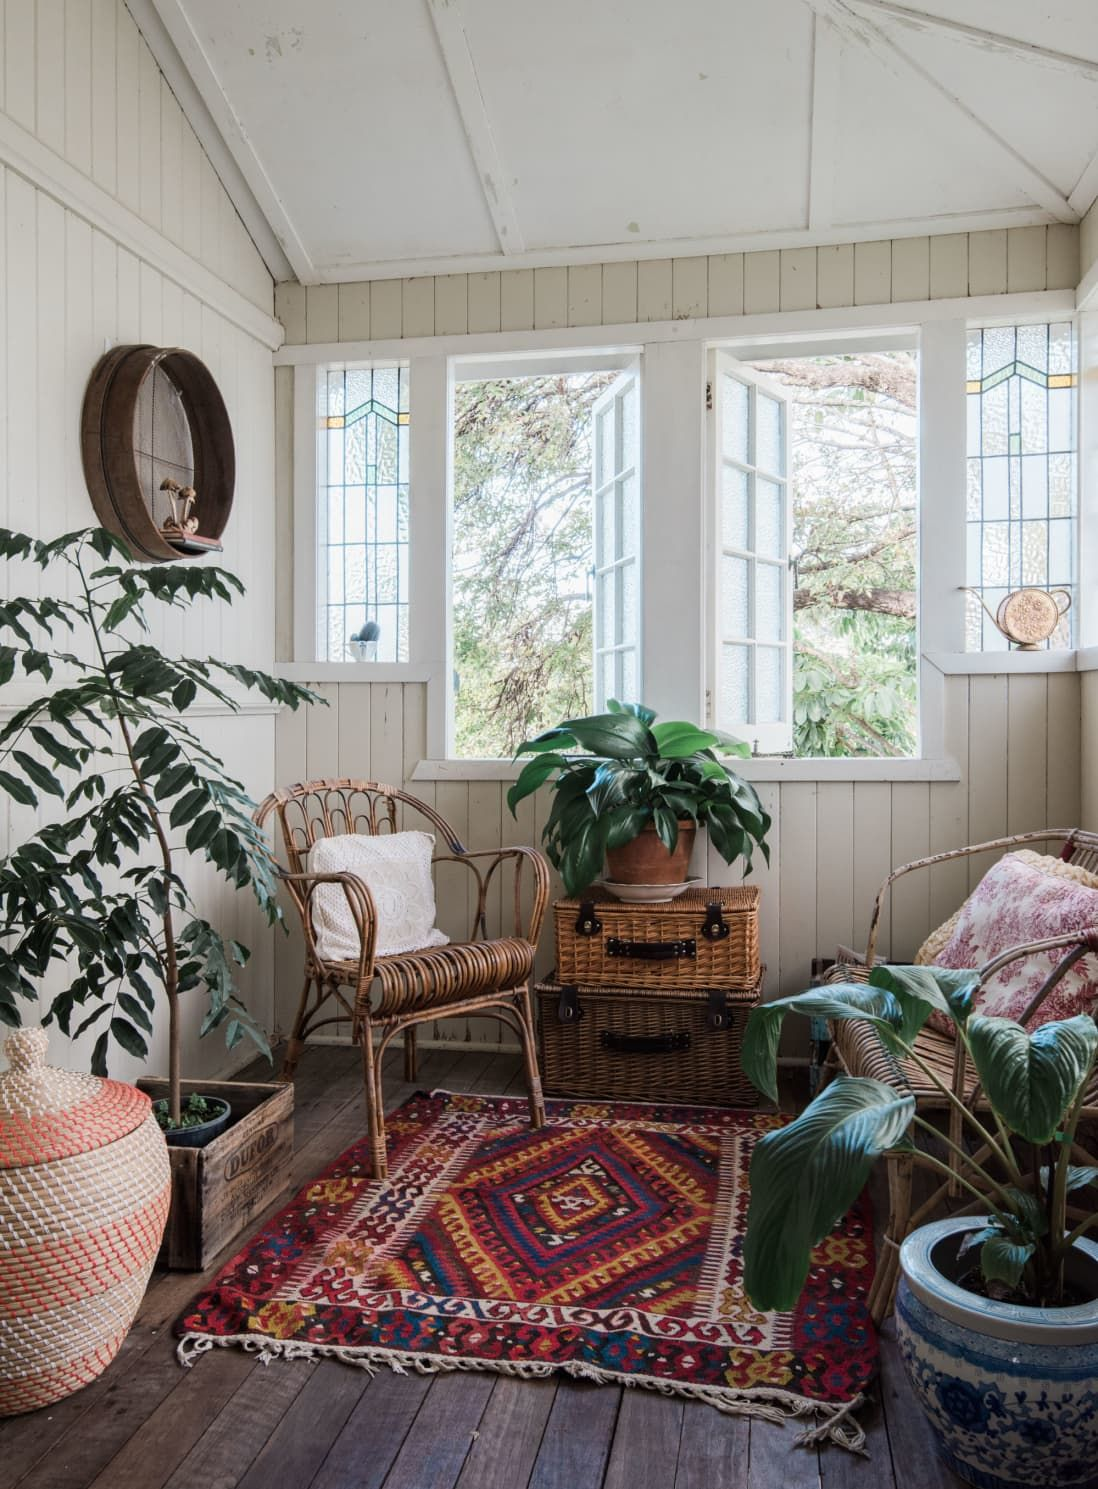 Photo of A Warm, Bohemian Country Style Australian Home